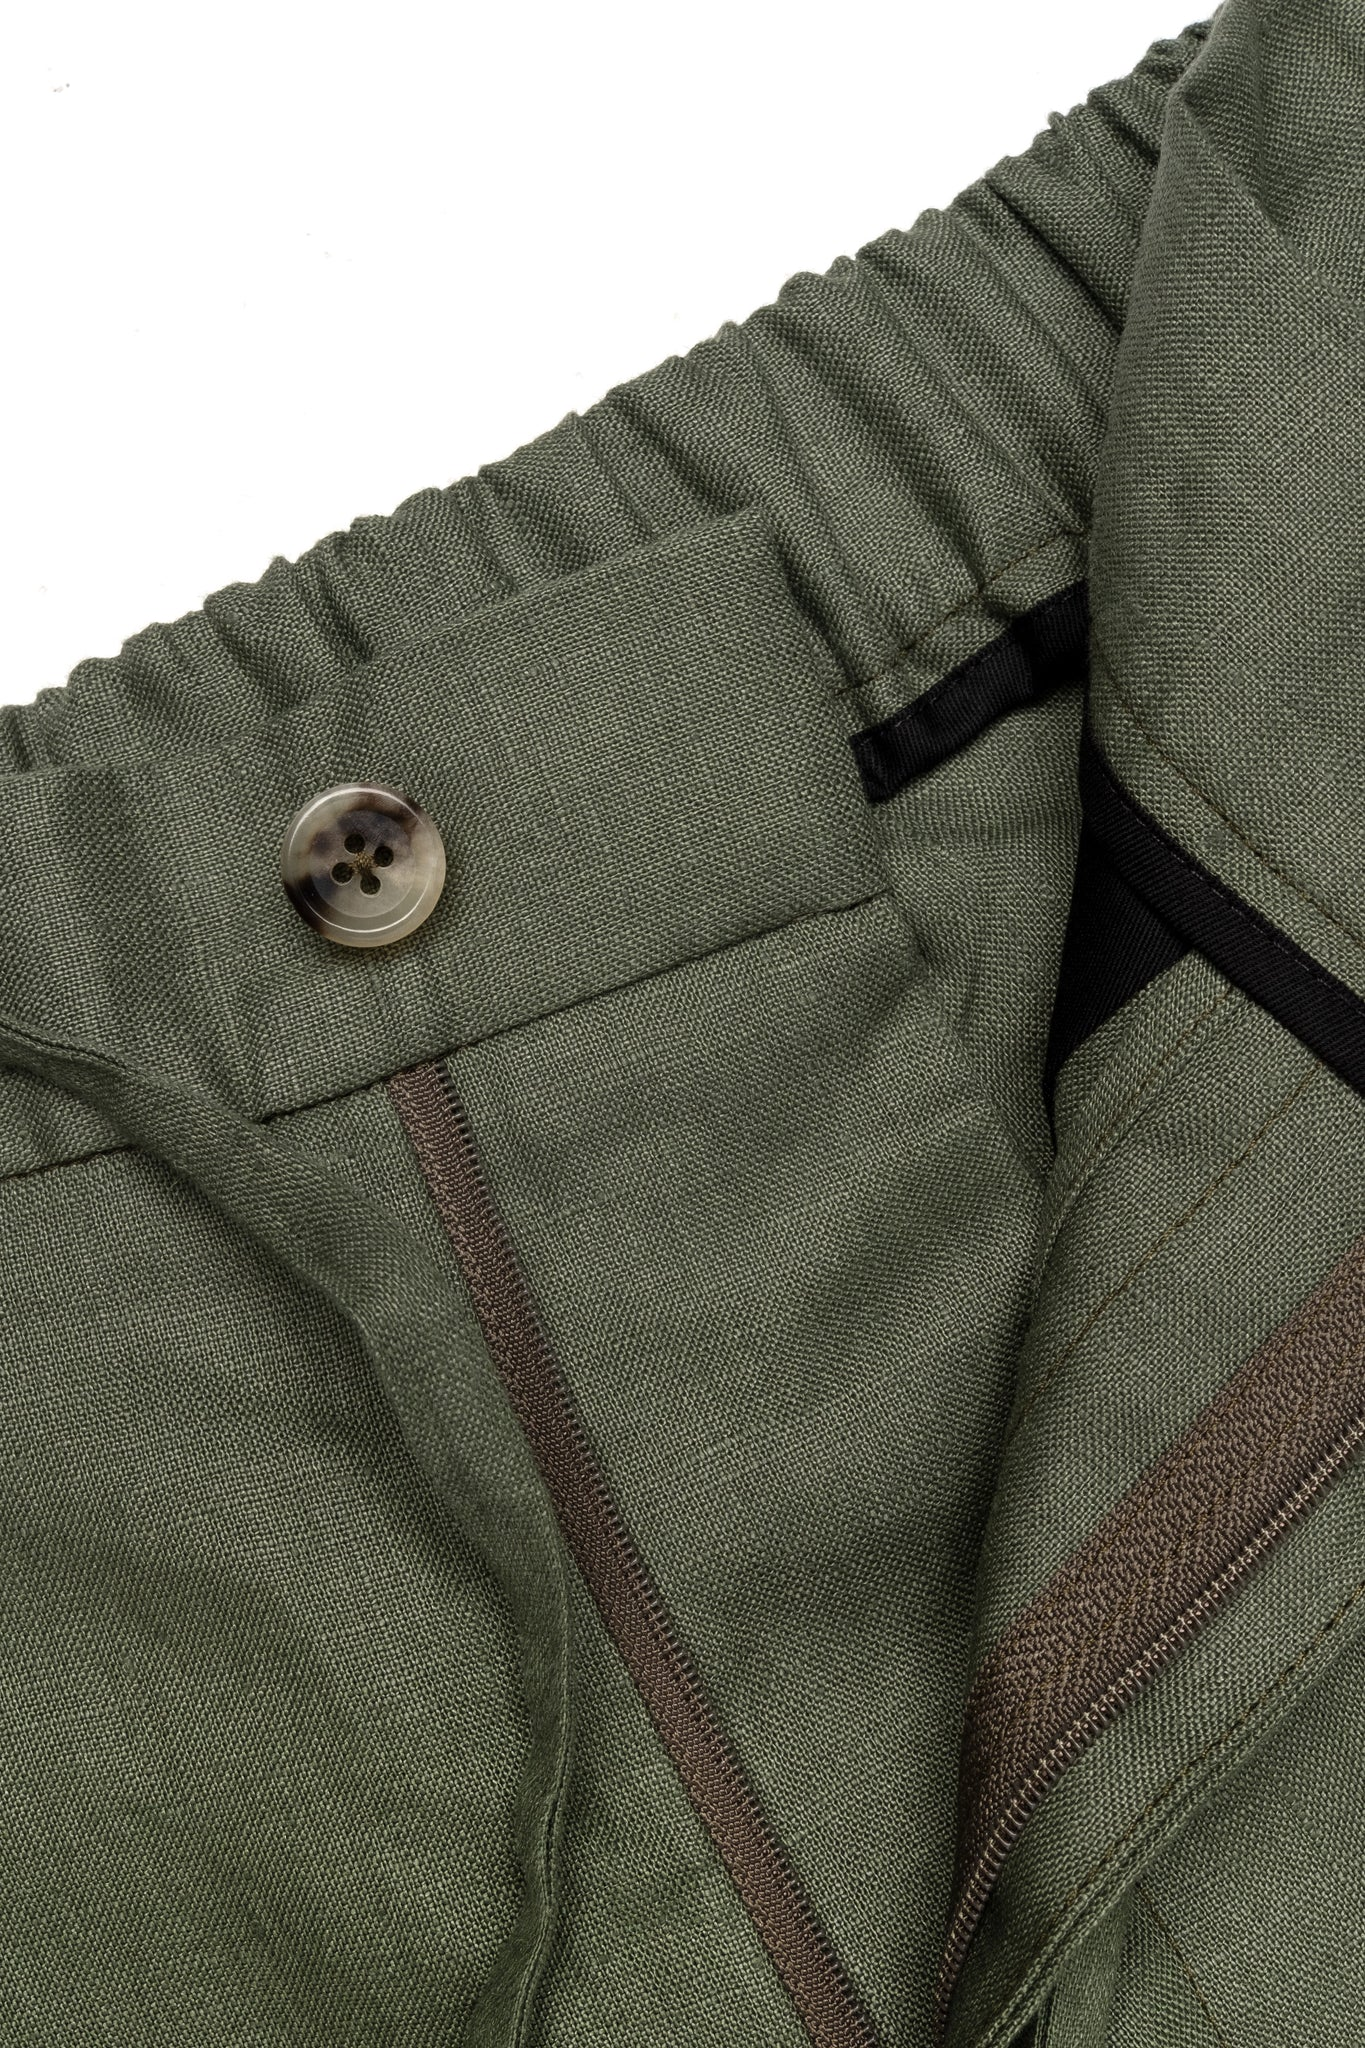 P Johnson Army Green Linen Drawstring Shorts